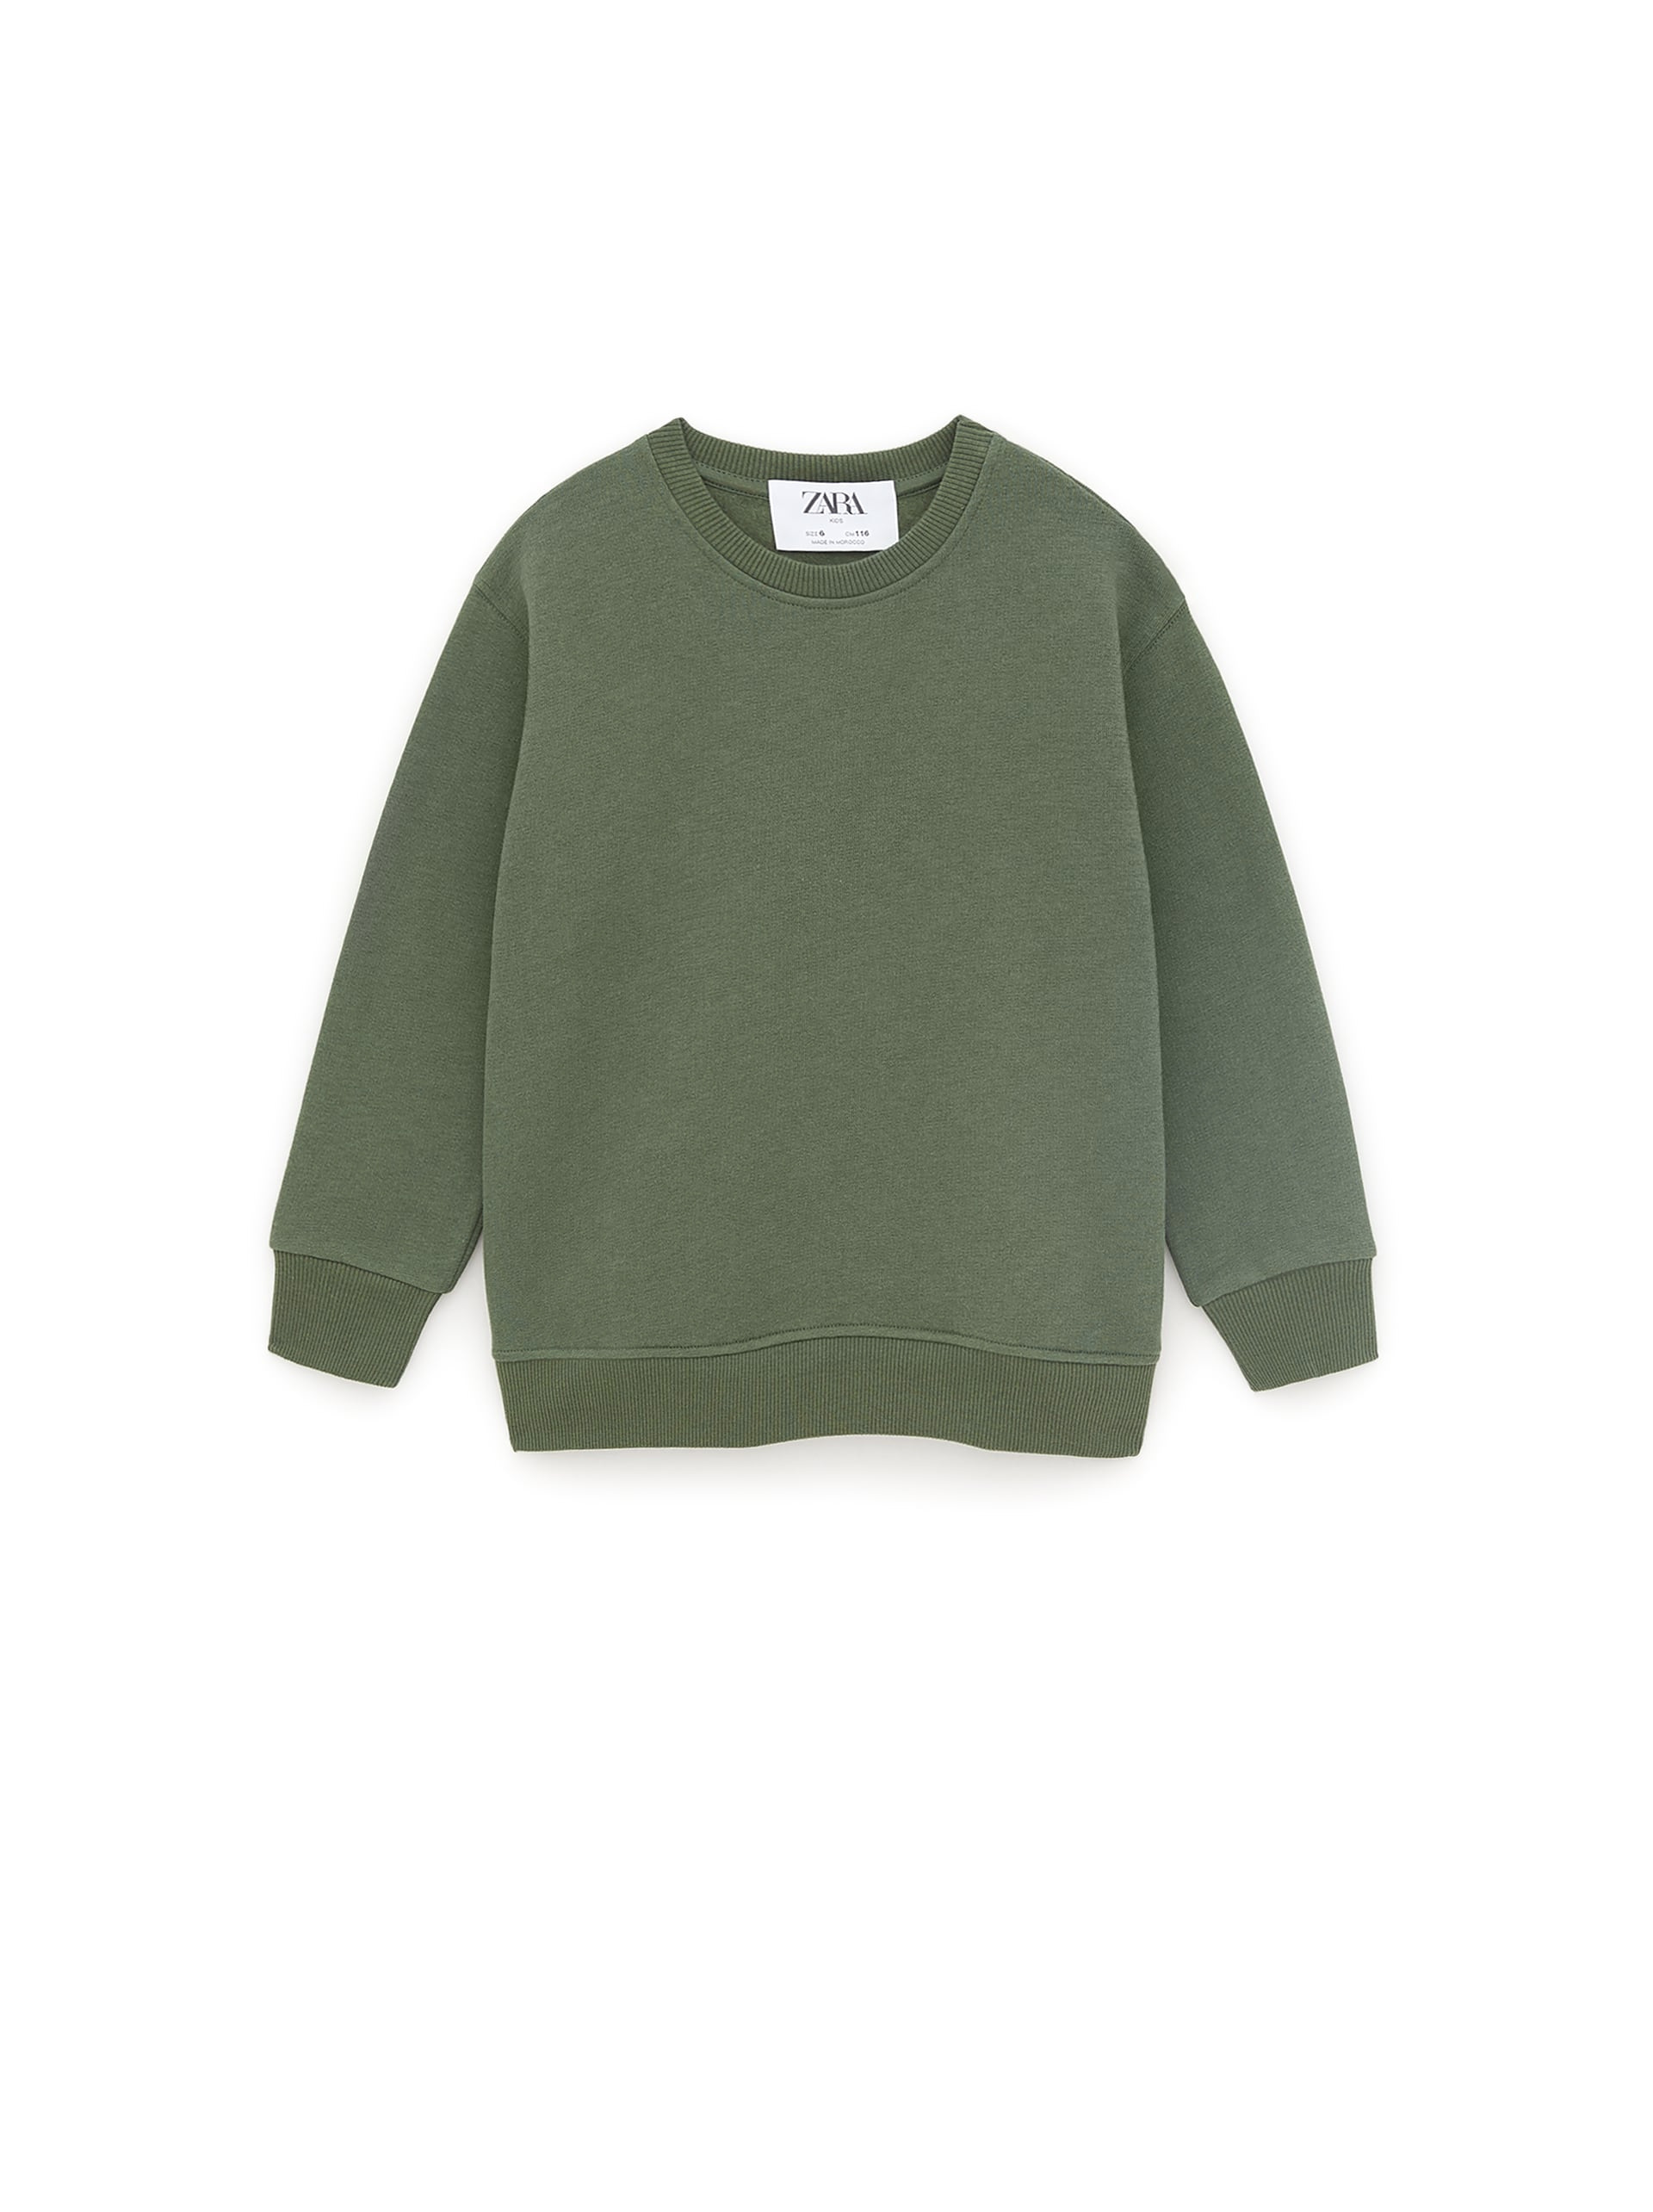 ZARA Basic Plain Sweatshirt